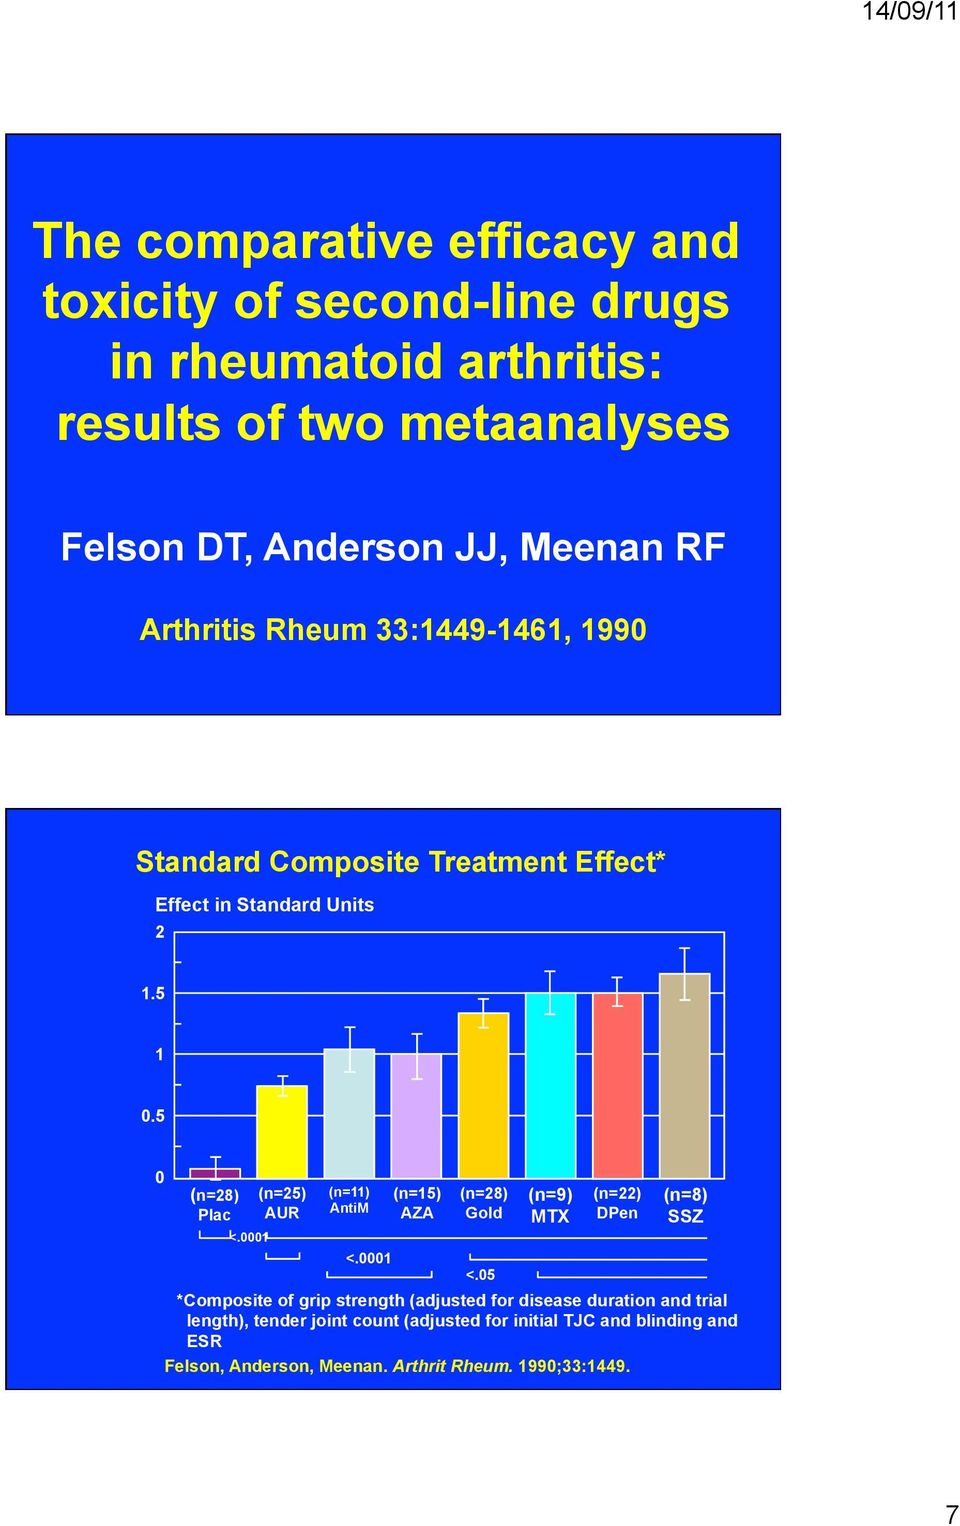 methotrexate hydroxychloroquine and intramuscular gold pdf